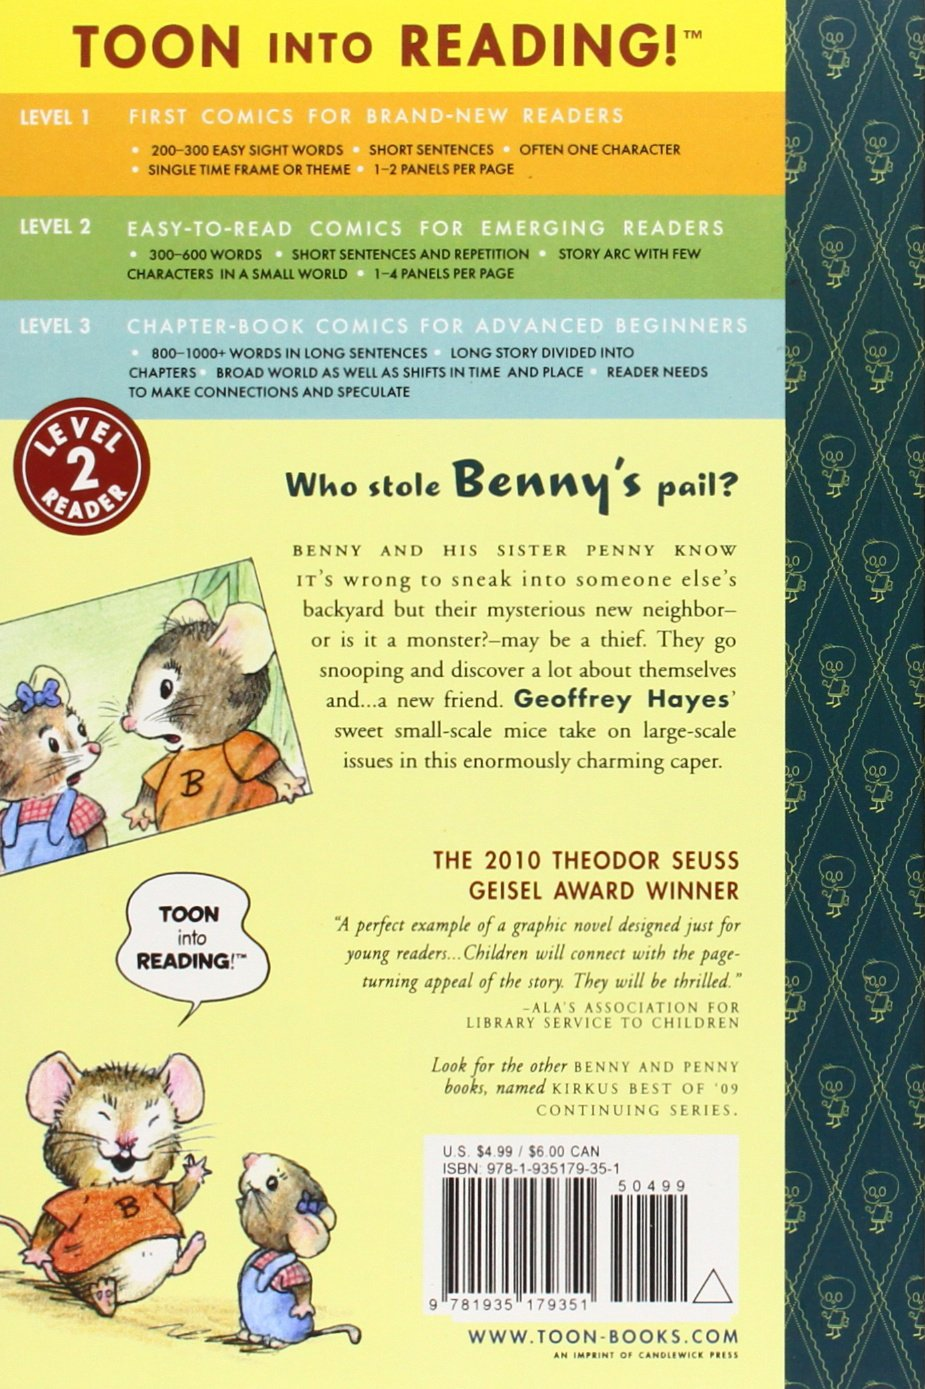 Amazon.com: Benny and Penny in the Big No-No!: TOON Level 2  (9781935179351): Geoffrey Hayes: Books